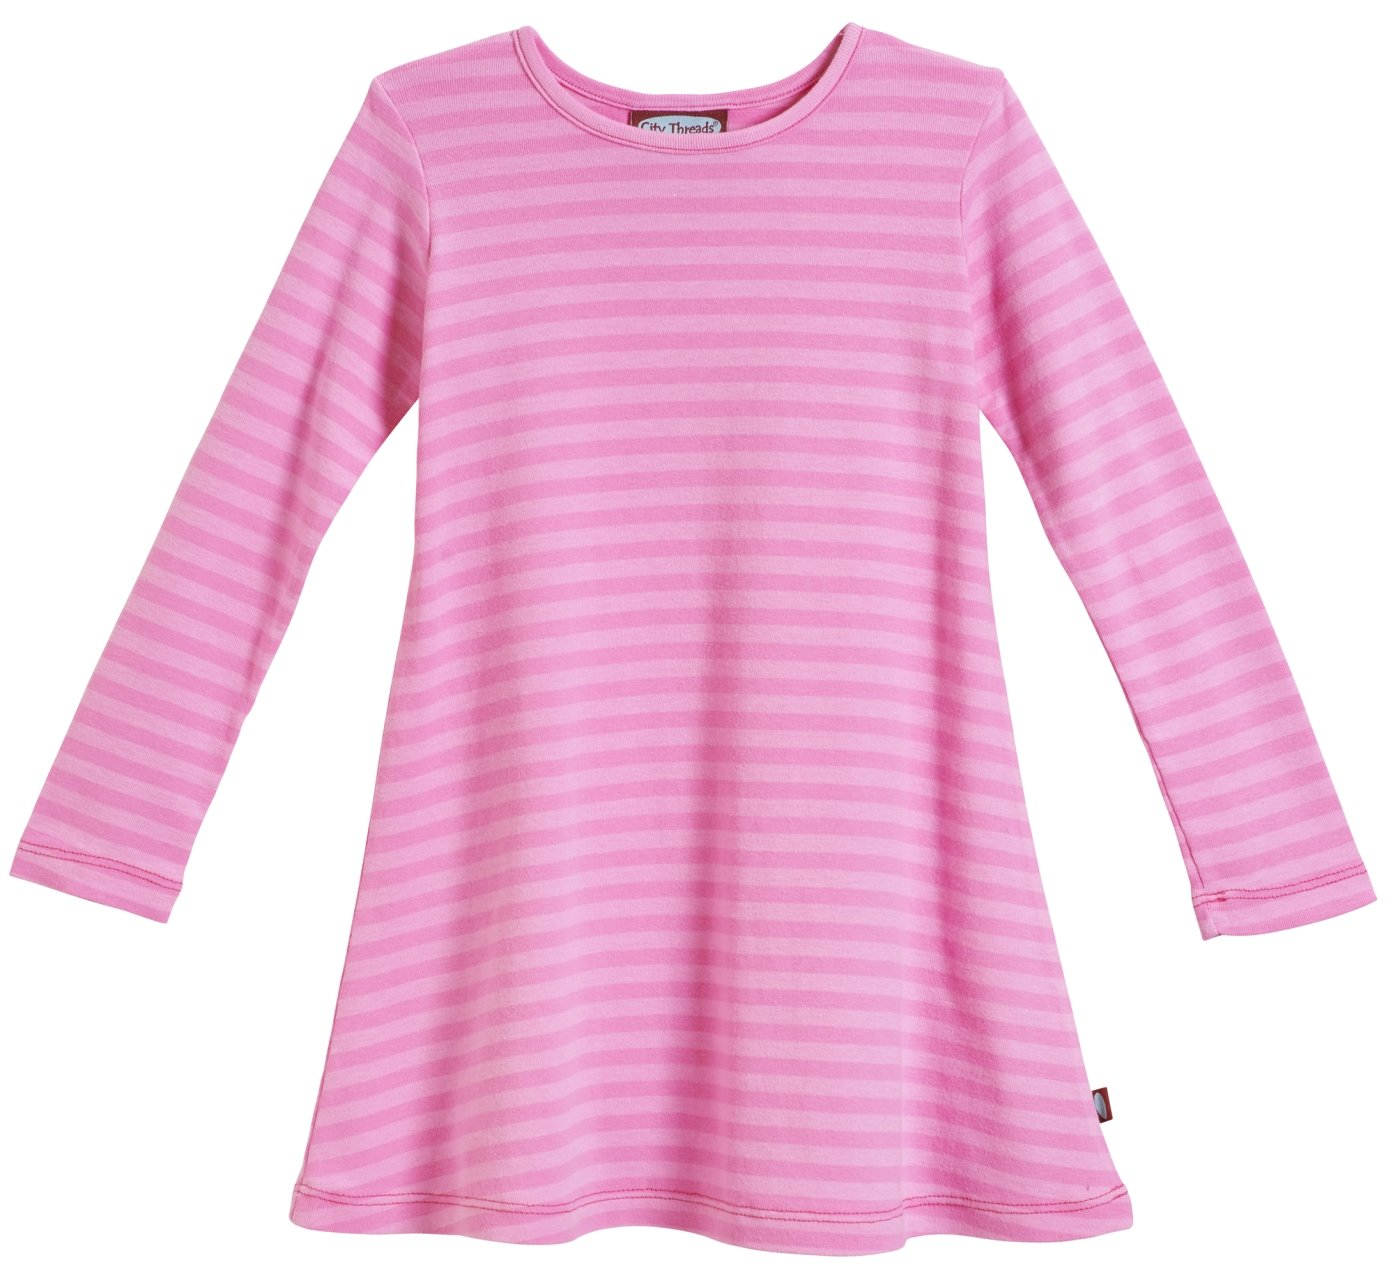 City Threads Girls' Super Soft Cotton Long Sleeve Dress Made in USA CT-LSDRESS-P